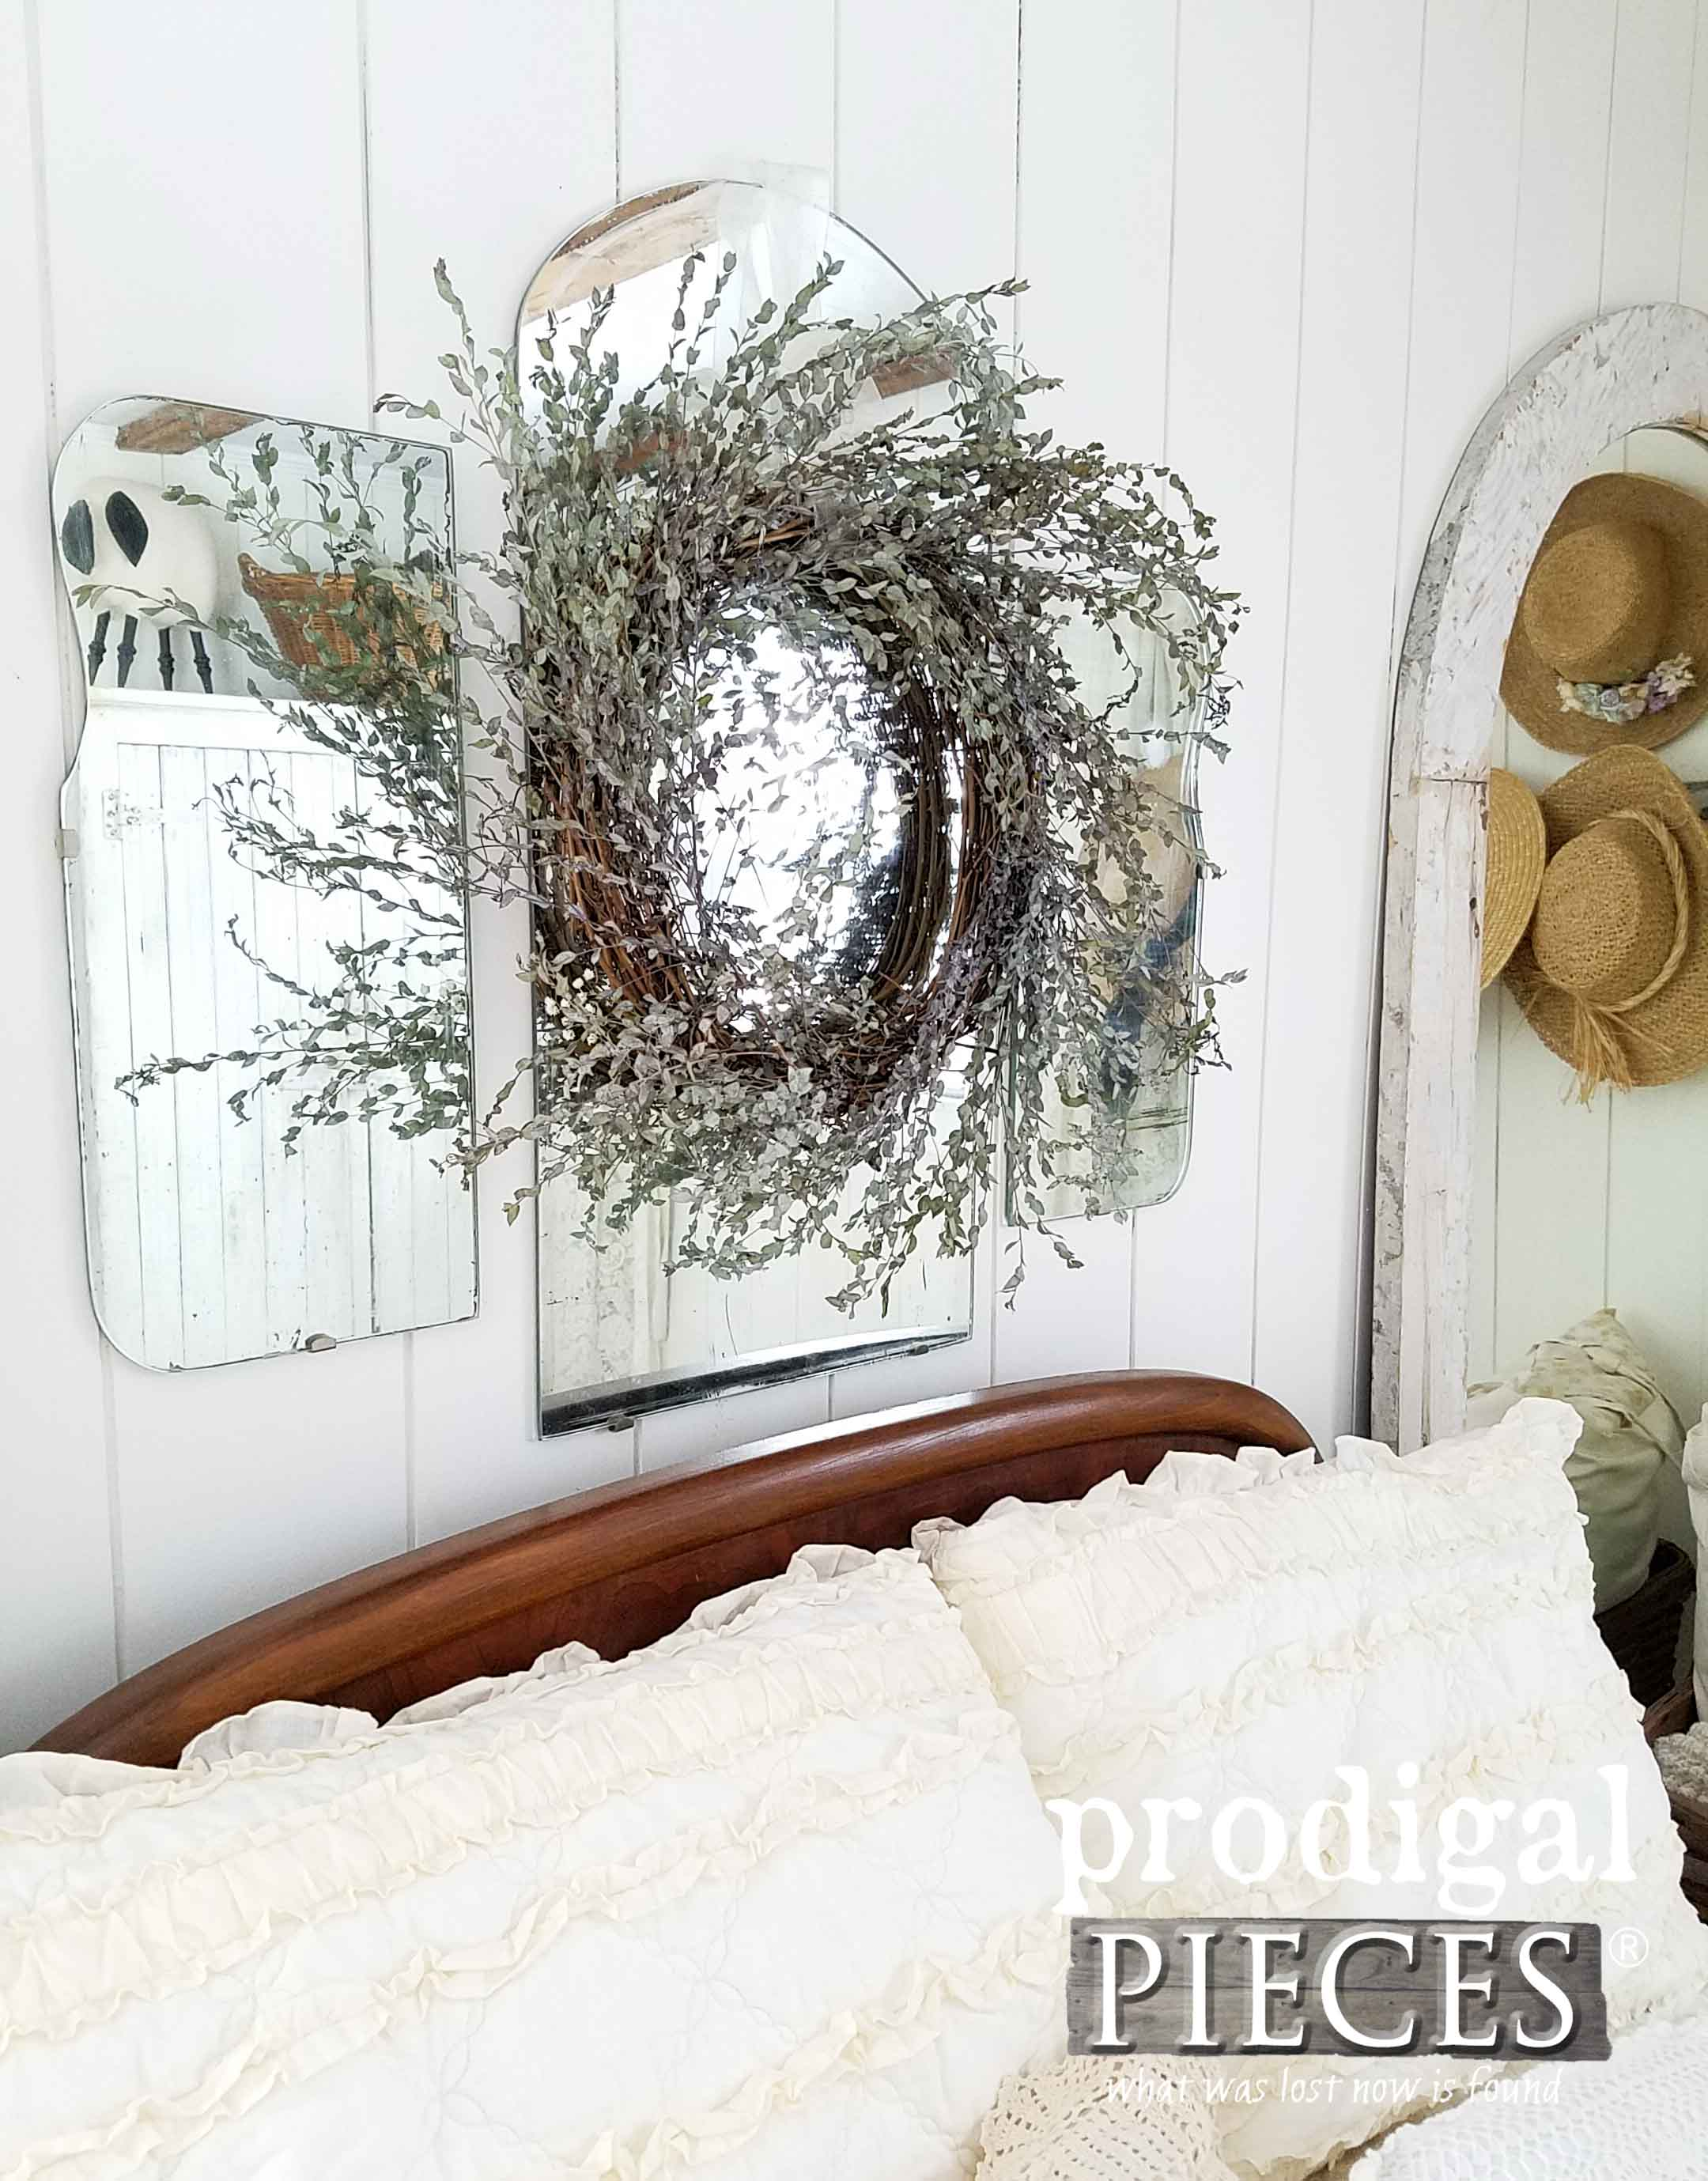 DIY Eucalyptus Wreath by Larissa of Prodigal Pieces | prodigalpieces.com